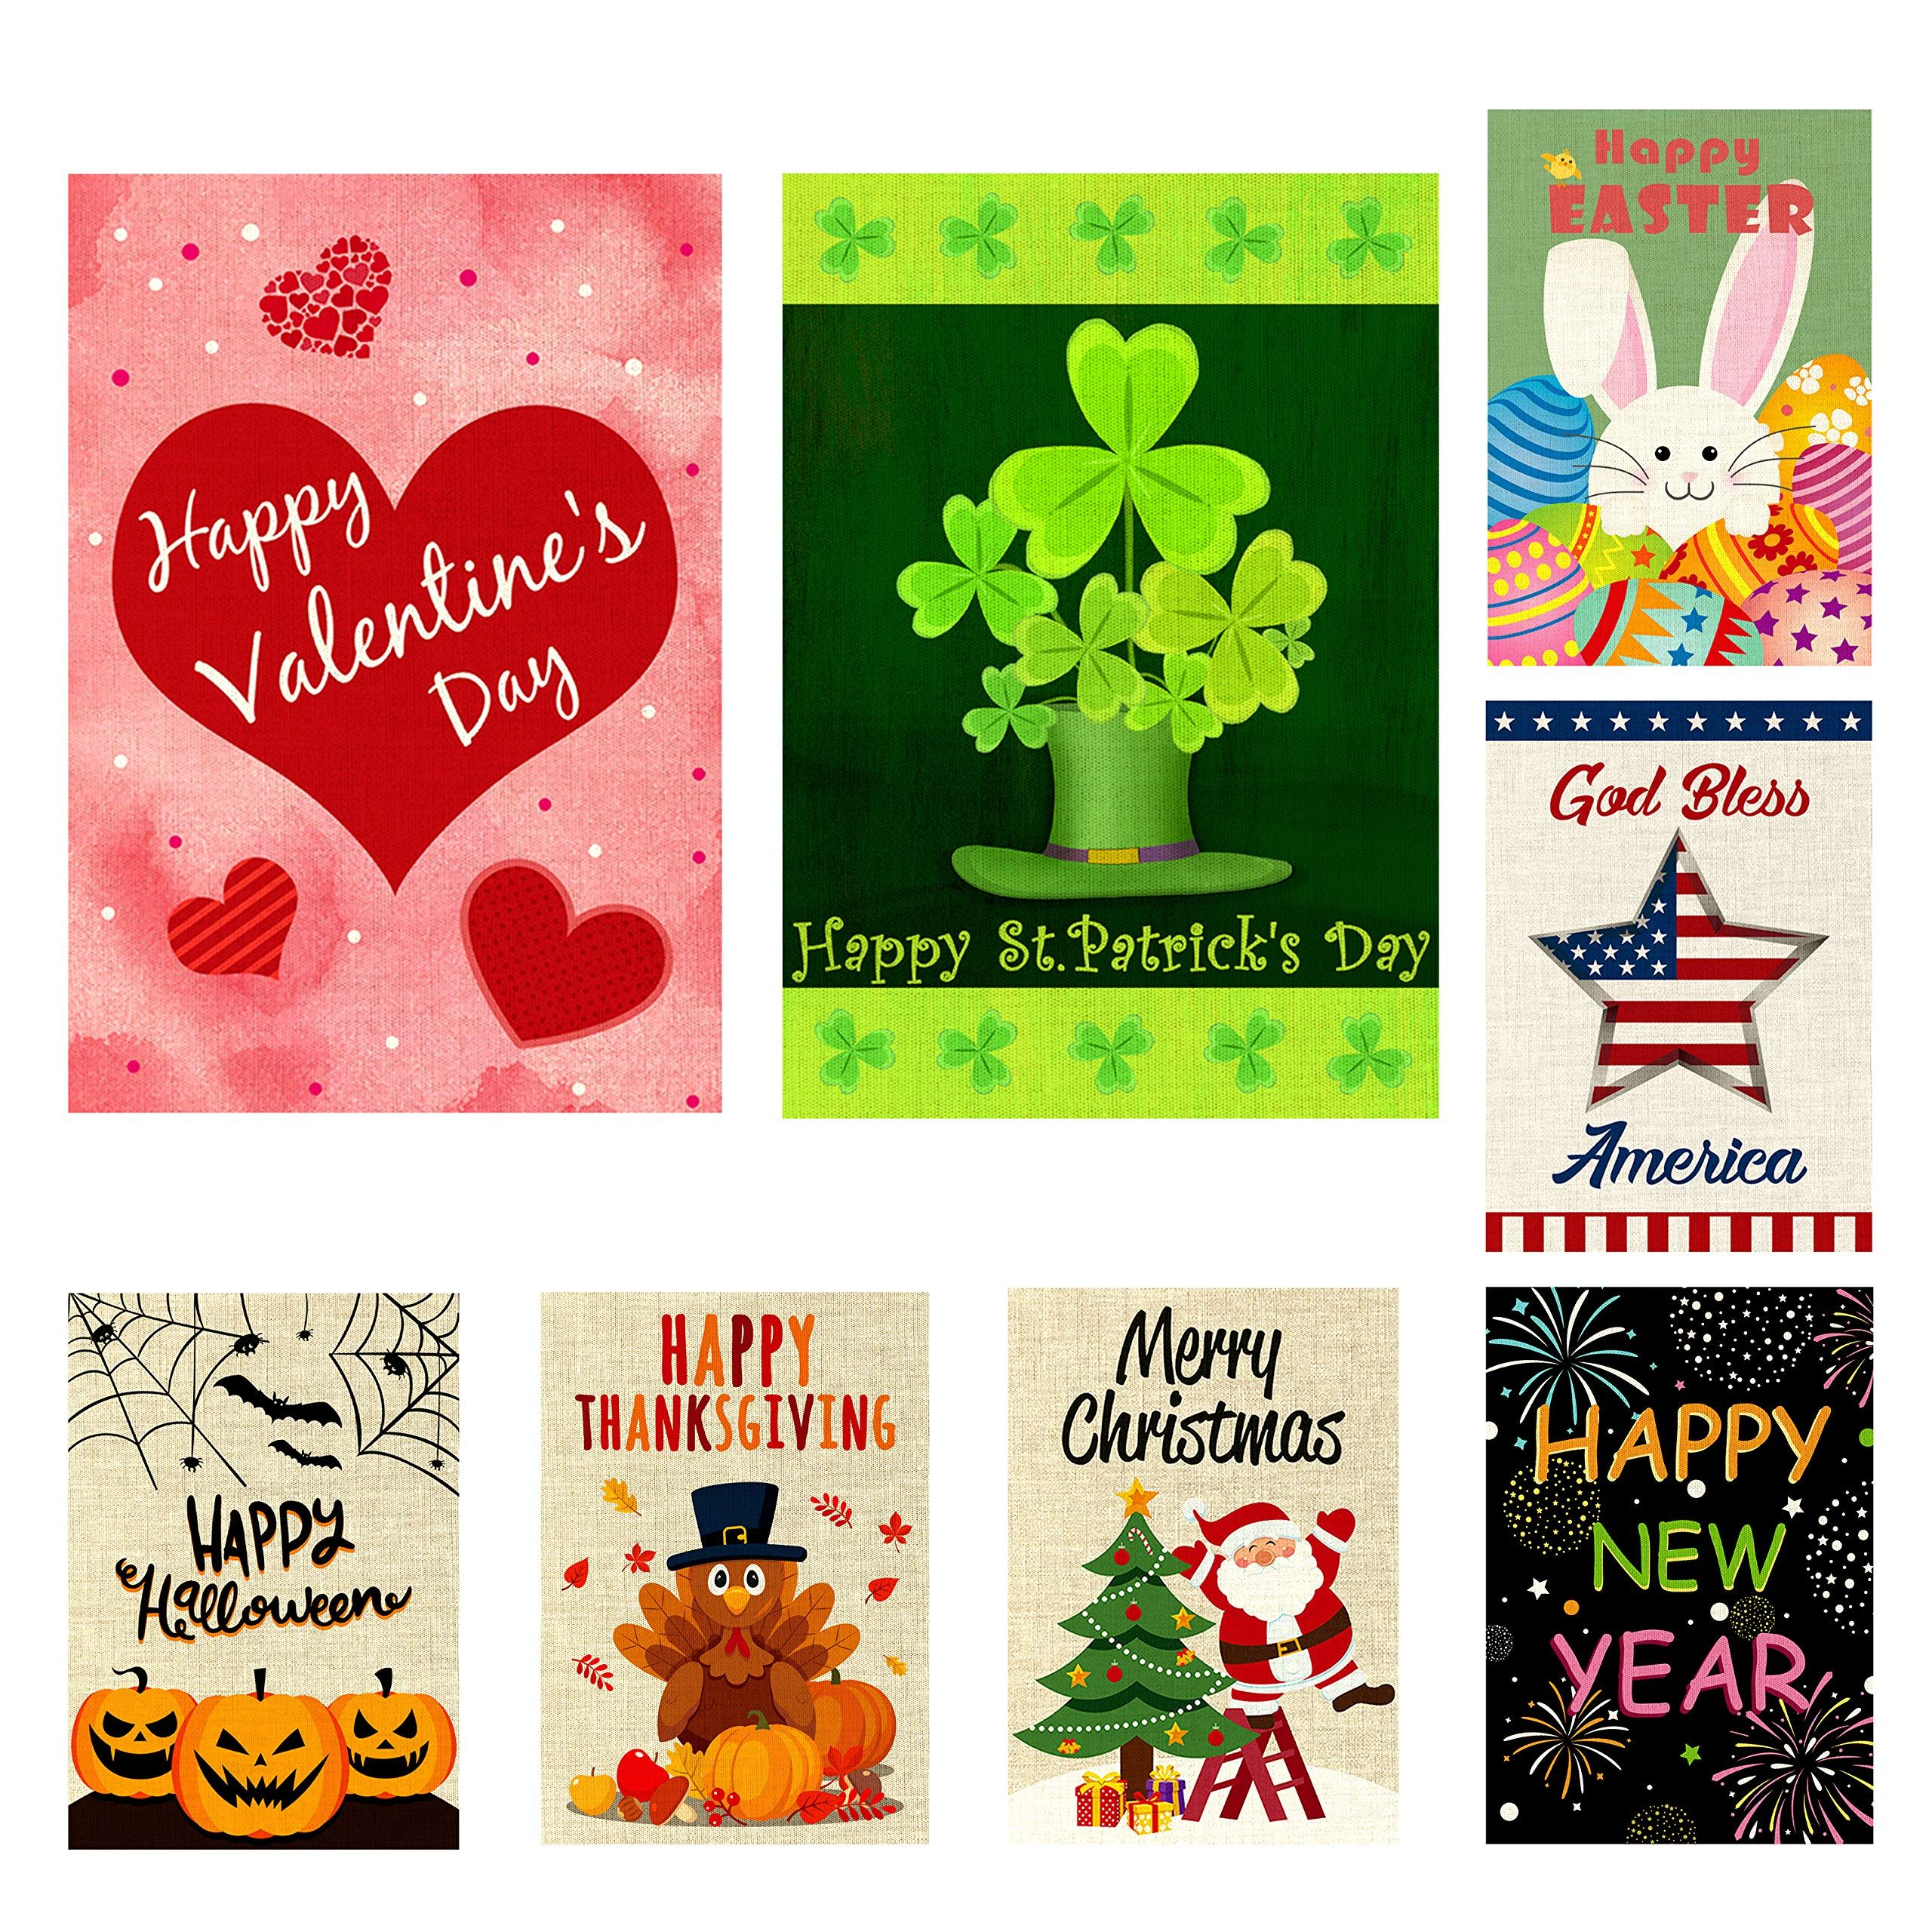 House Flags Discount Decorative Flags Outdoor Flags Decorative Flags Outdoor Flag Decor House Flags